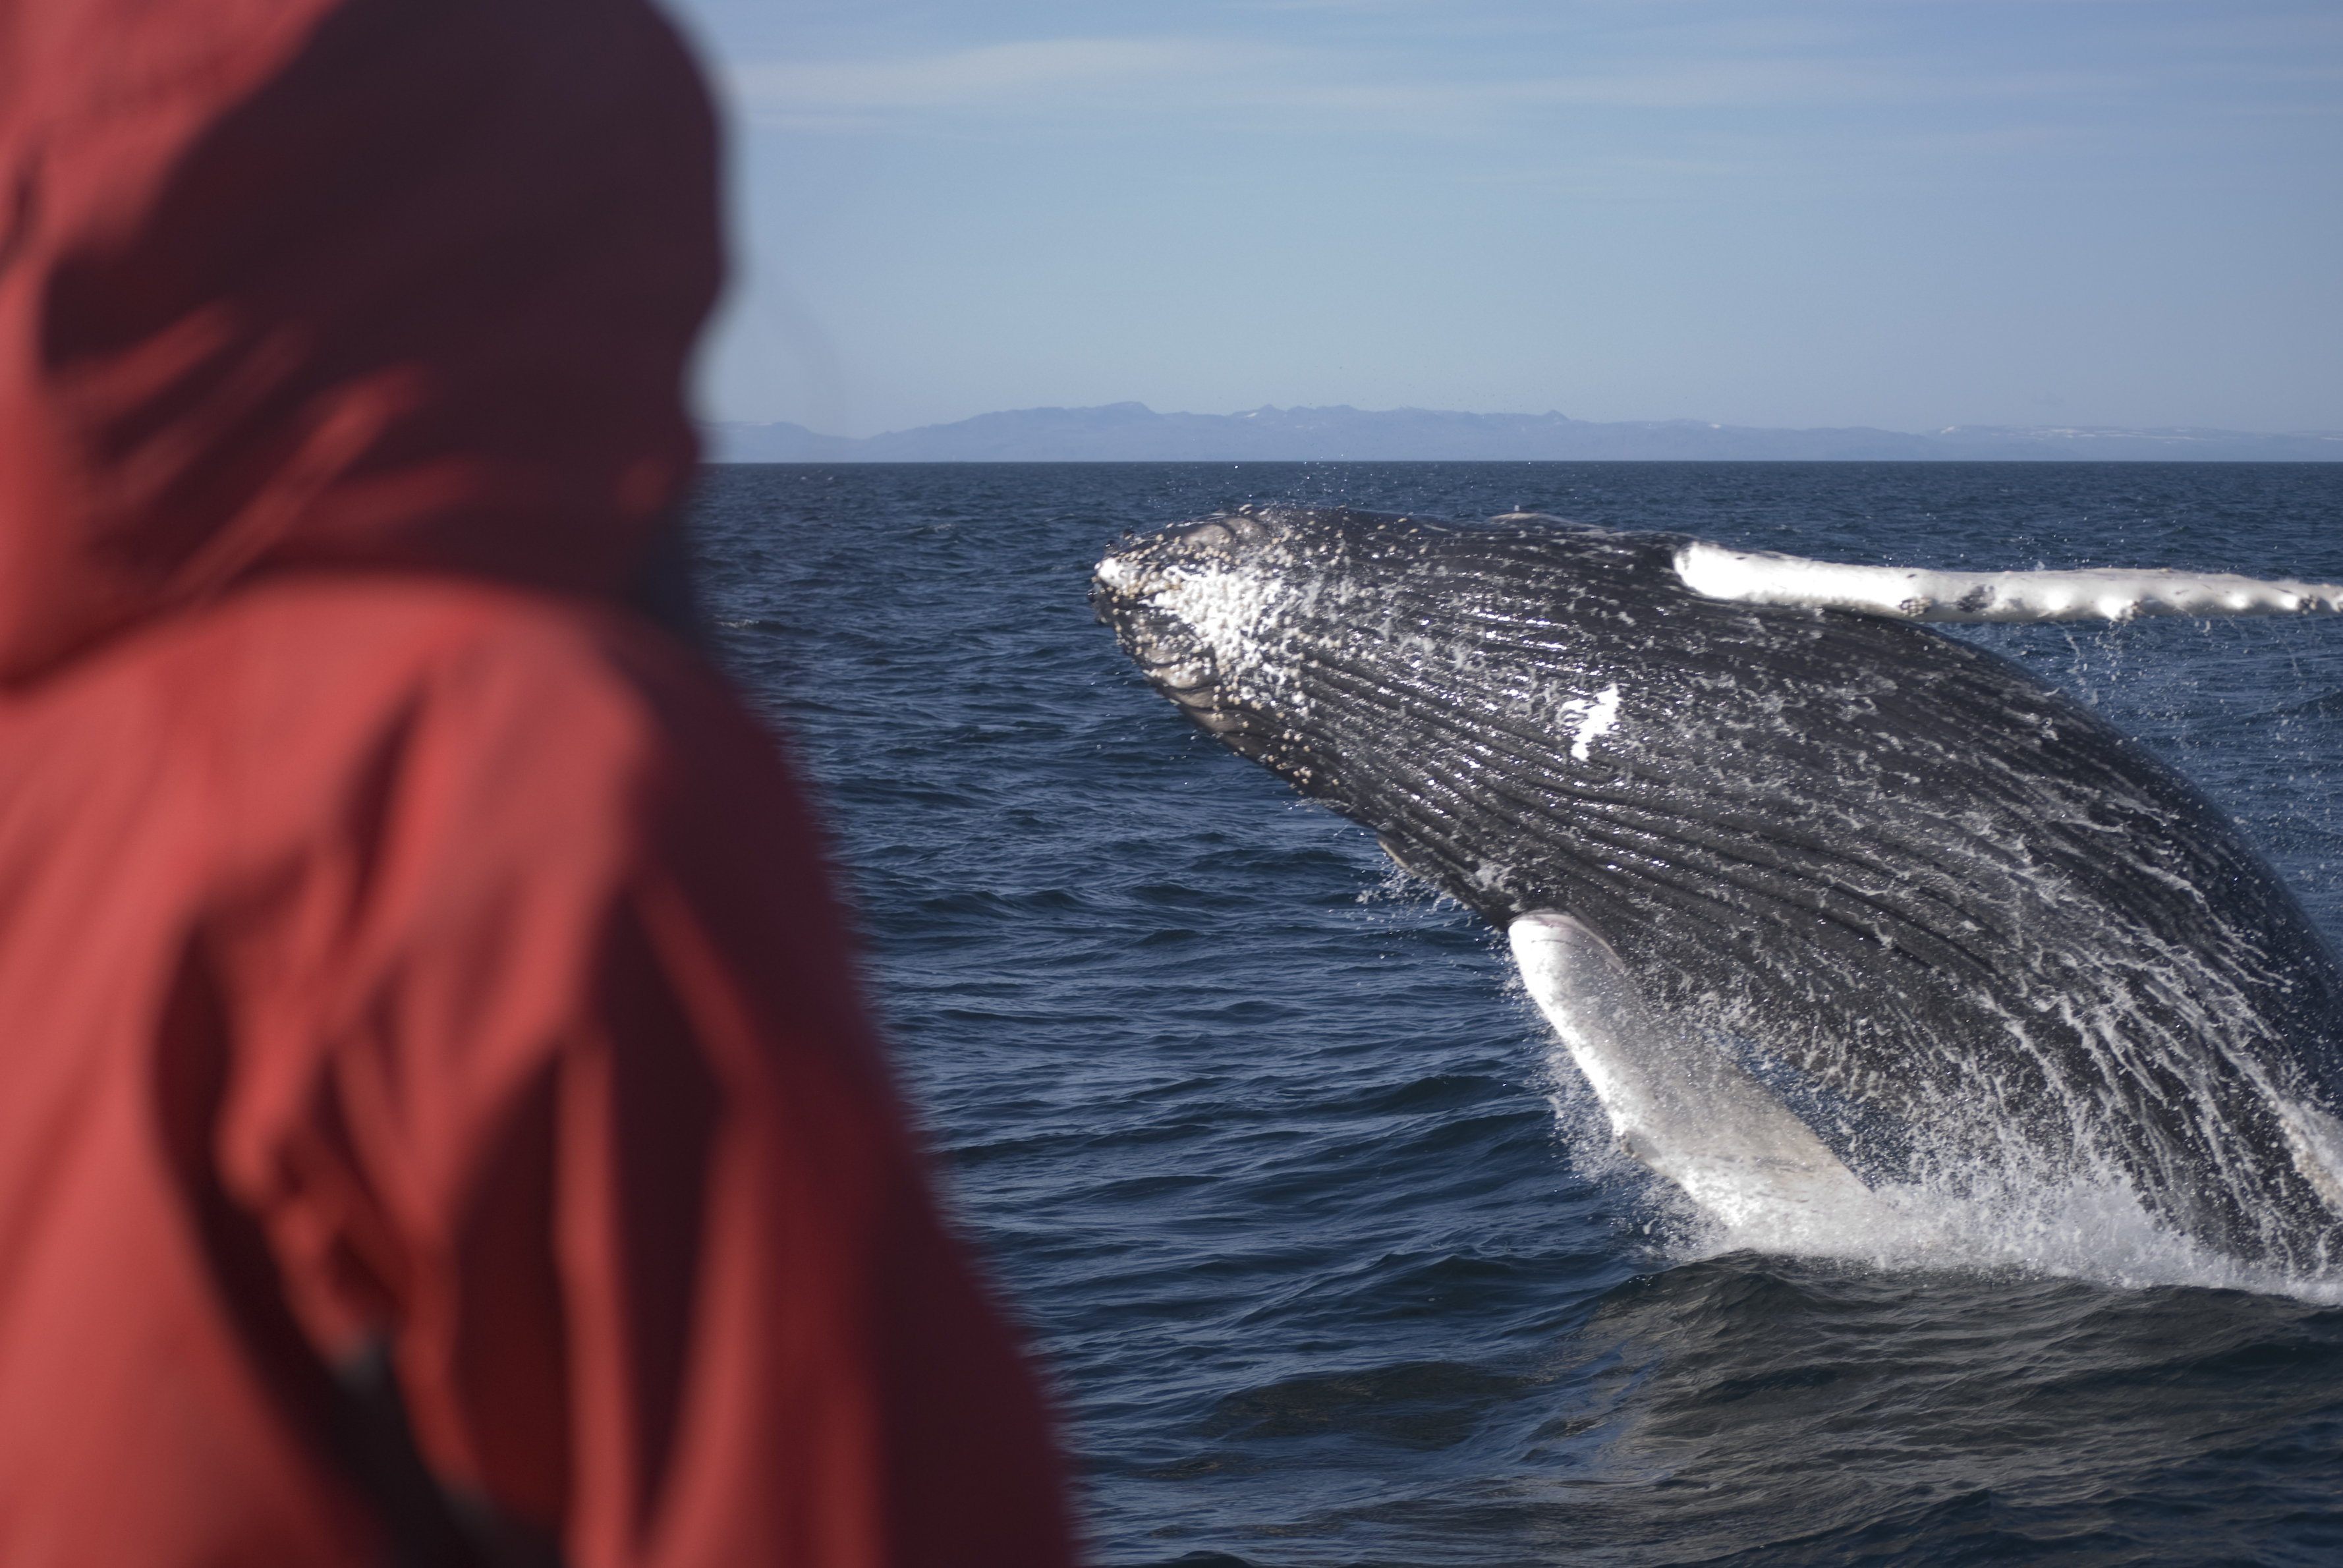 Elding Whale Watching tour